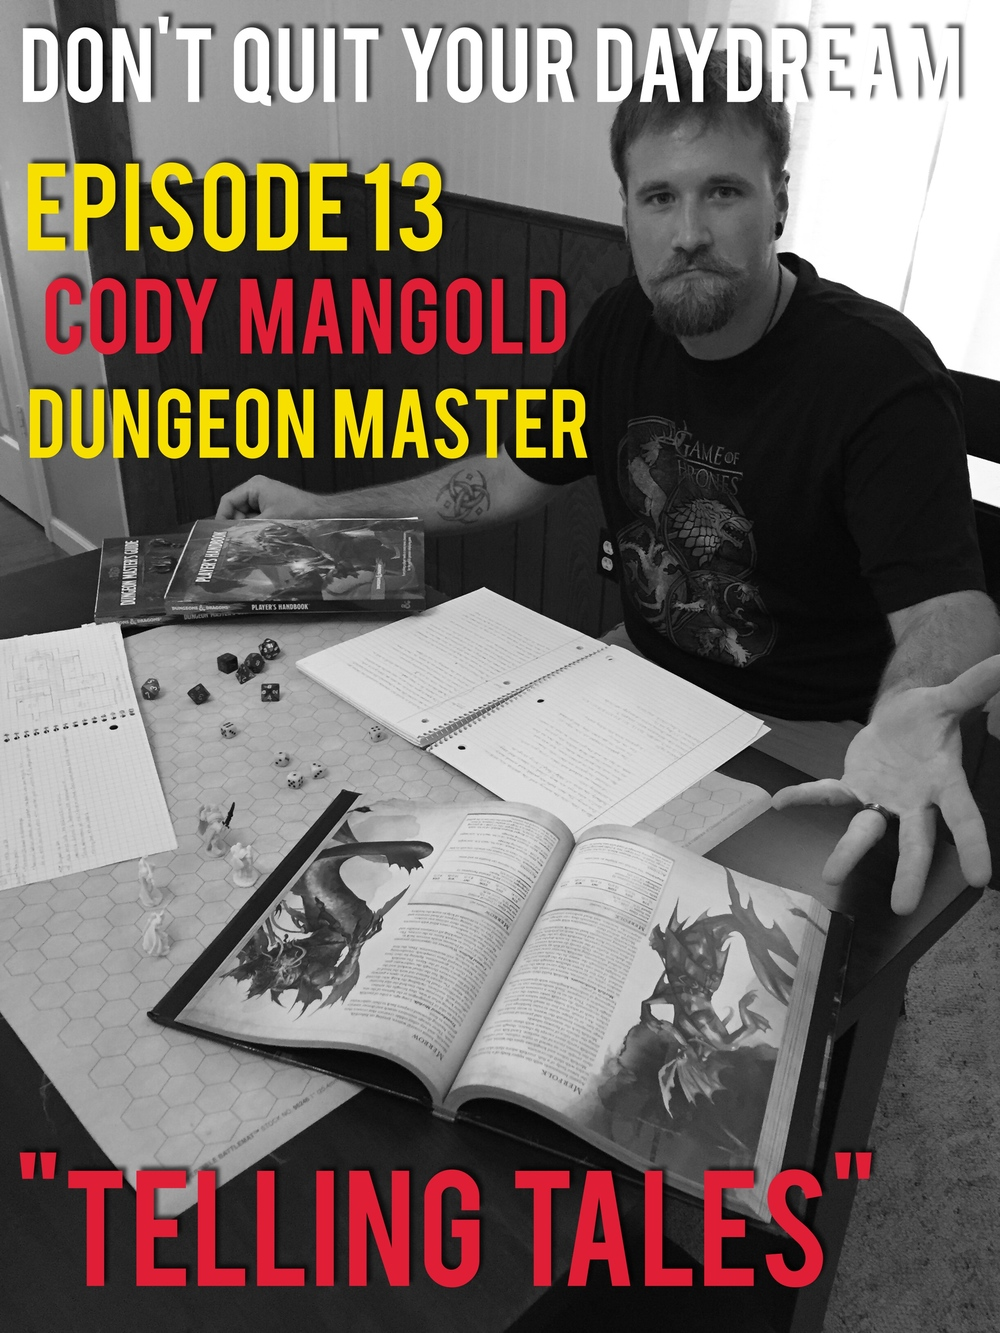 "In Episode 13 of Don't Quit Your Daydream we sit down with our good buddy and dungeon master, Cody Mangold. Cody talks about the art of storytelling and how getting together to roll dice with your buddies is nothing to be ashamed of. He takes us through each step of designing your own role playing campaign from building towns to voicing the local innkeeper. Above all else, Cody shatters the ""nerd"" stereotype and gives information on how you yourself can take part in the wonderful pastime of Dungeons & Dragons. Also, this is another interview that unfortunately had a mixer issue. Given the nature of the conversation, just imagine were speaking via magic!"